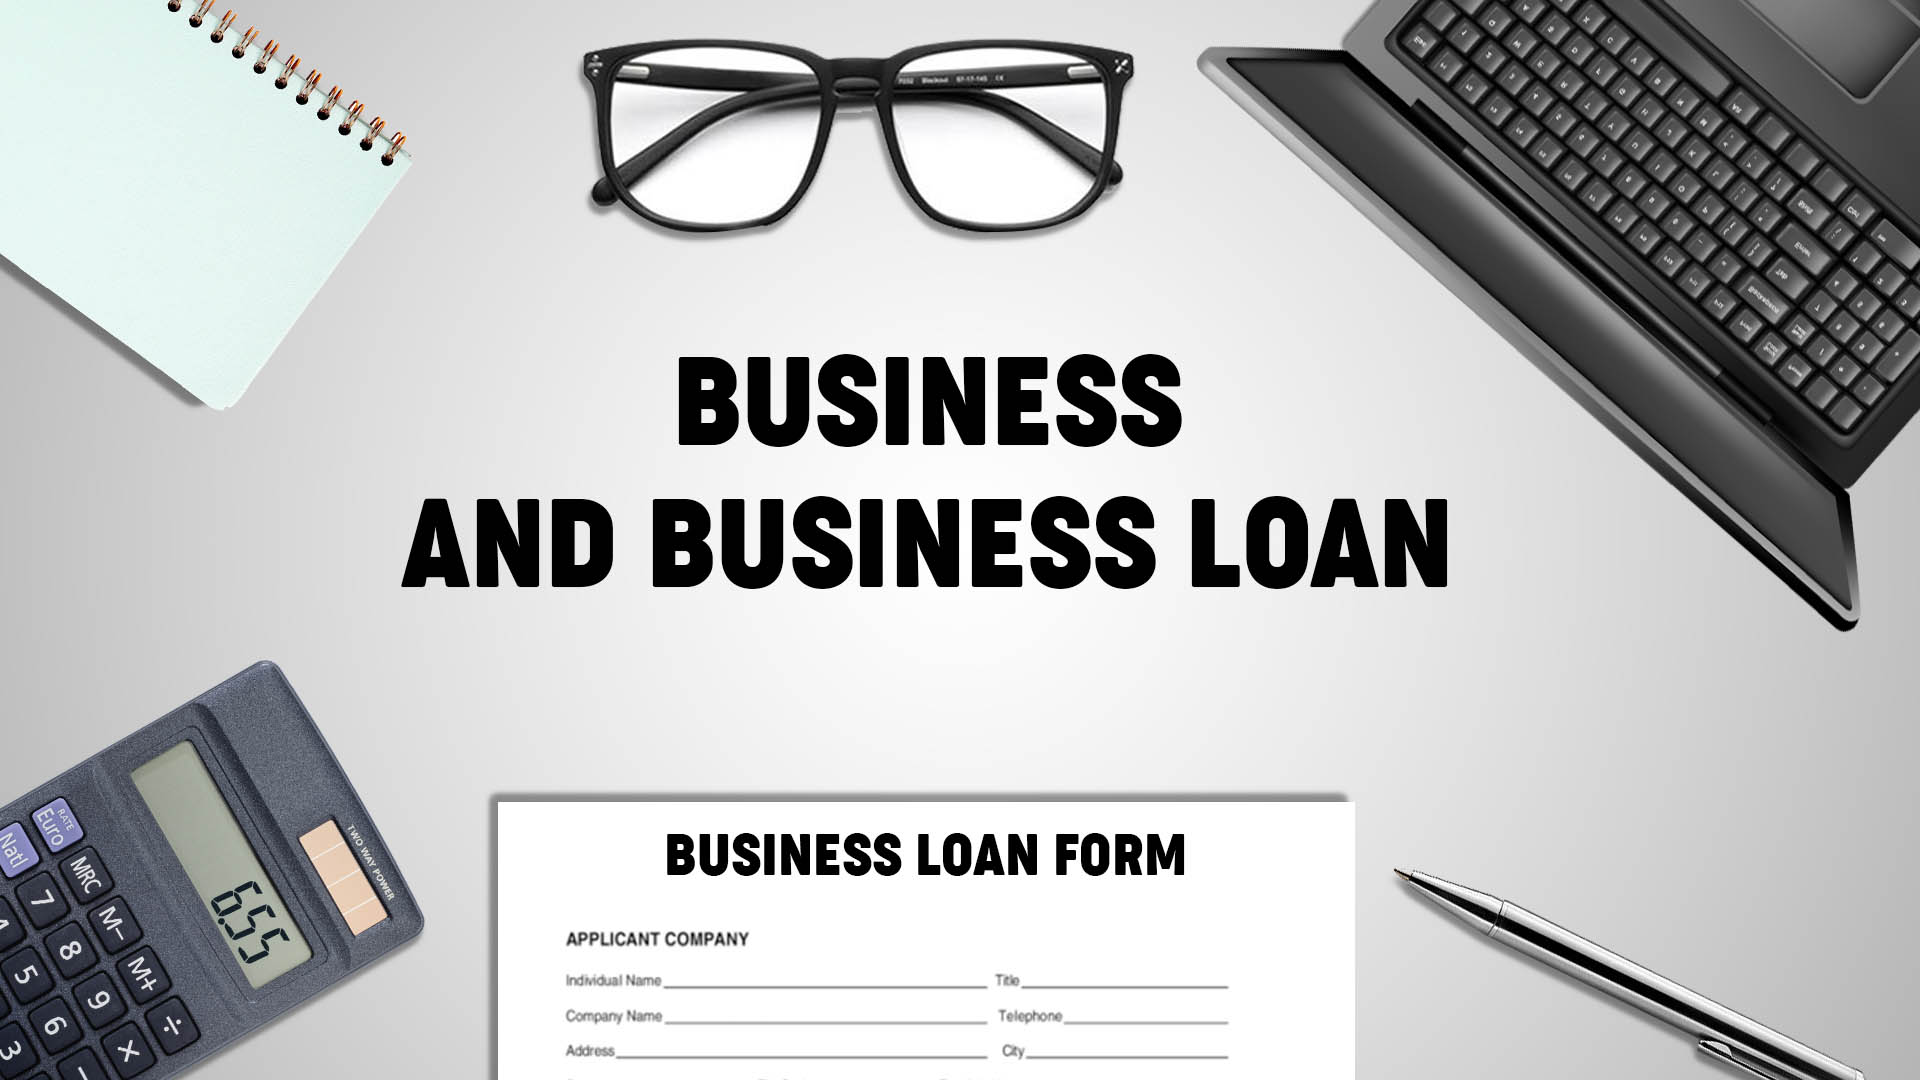 Business and Business loan